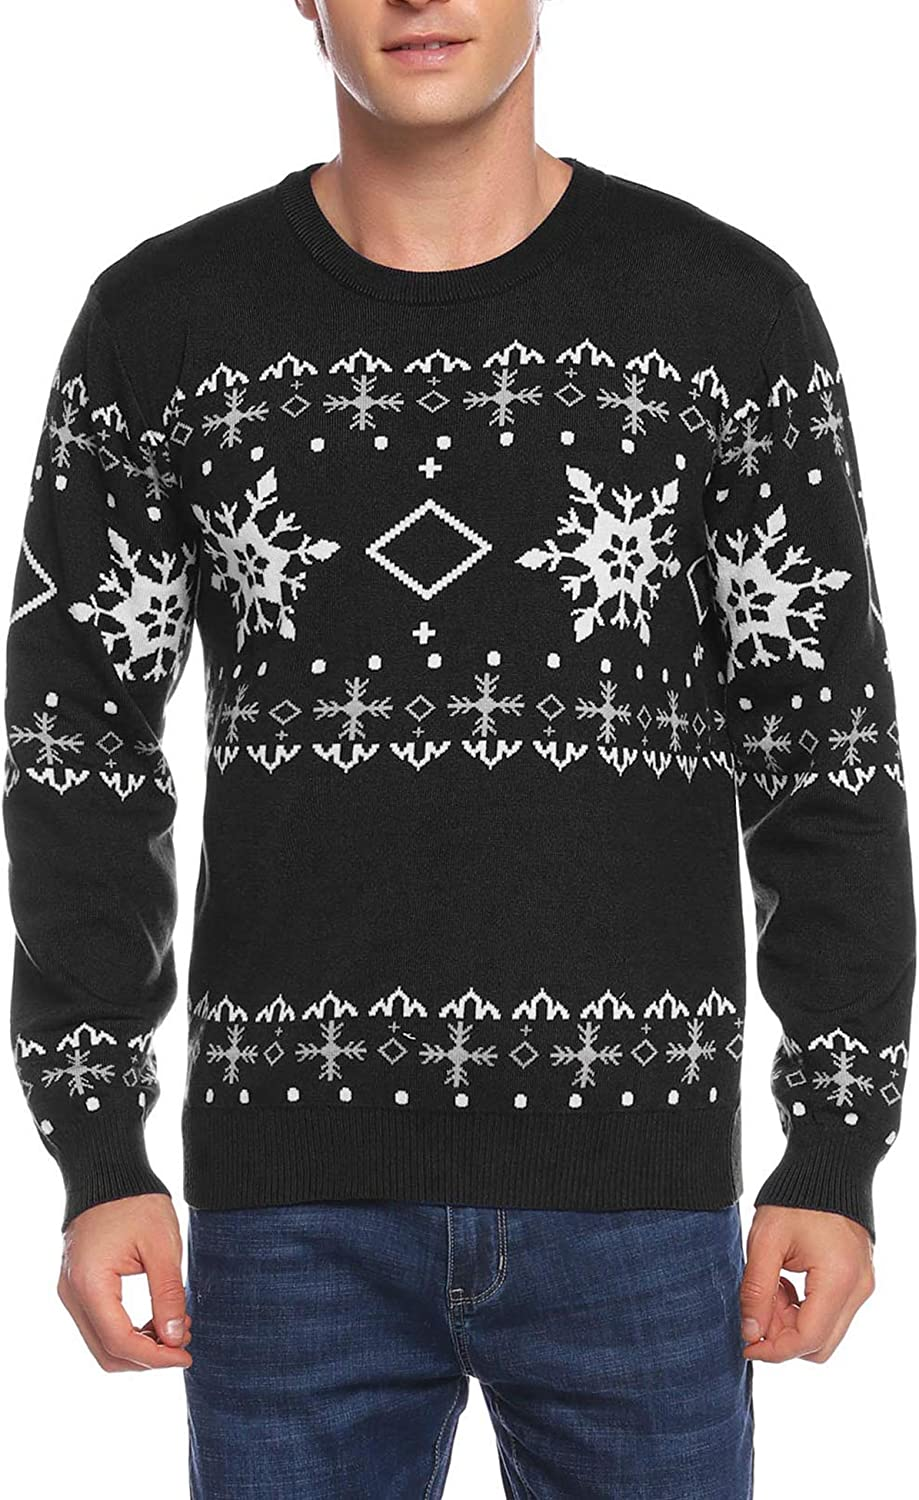 Aibrou Couples Ugly Christmas Sweater Pullover Sweater Crewneck Snowflake Reindeer Patterns Holiday Sweaters for Family